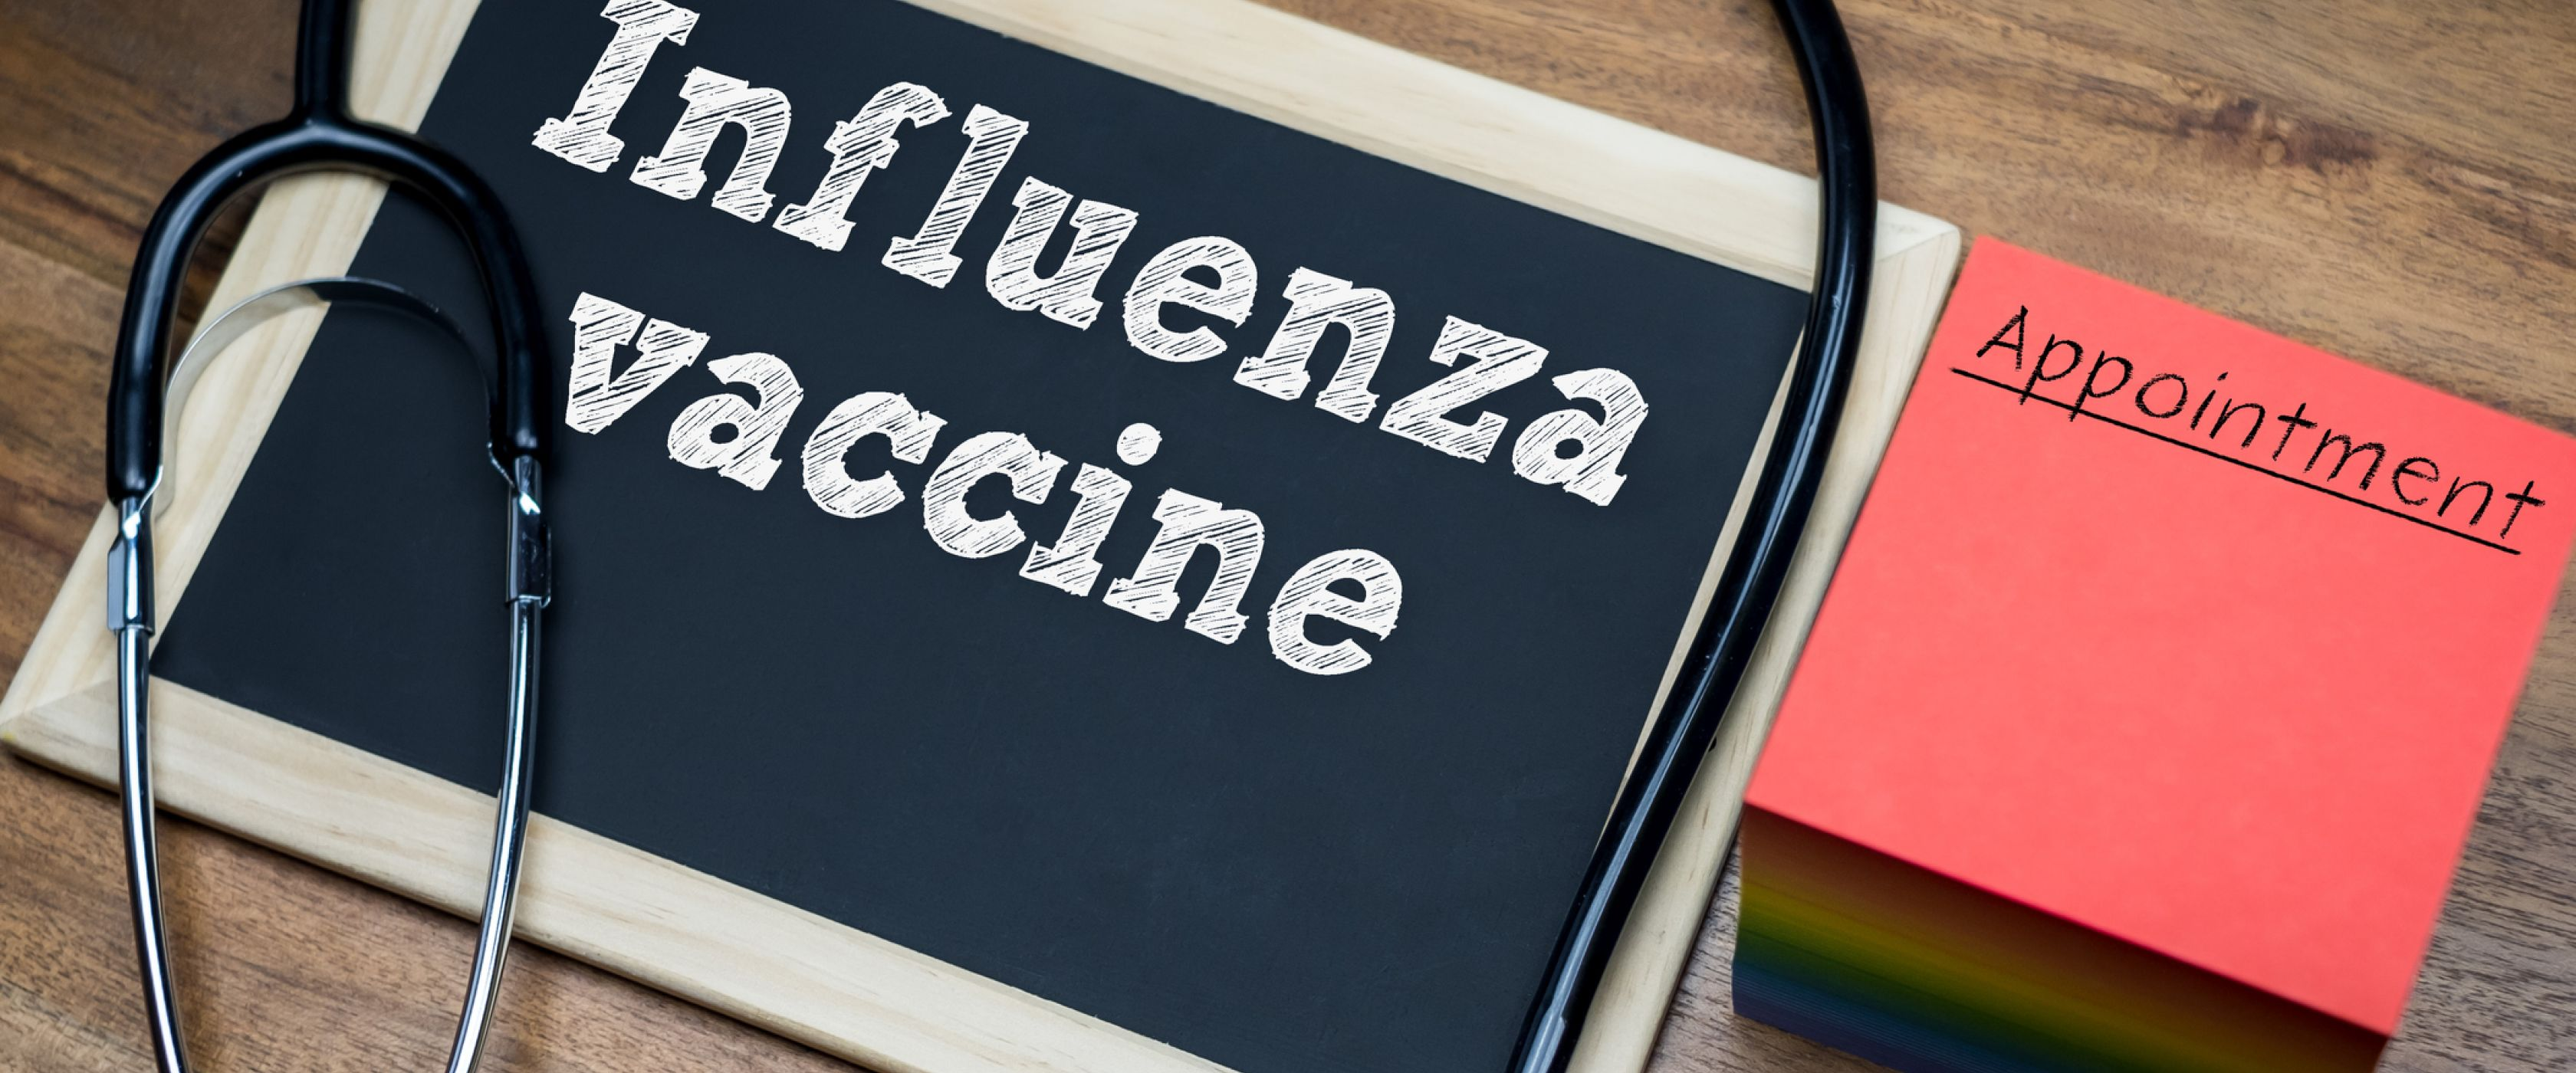 Influenza Vaccination Week